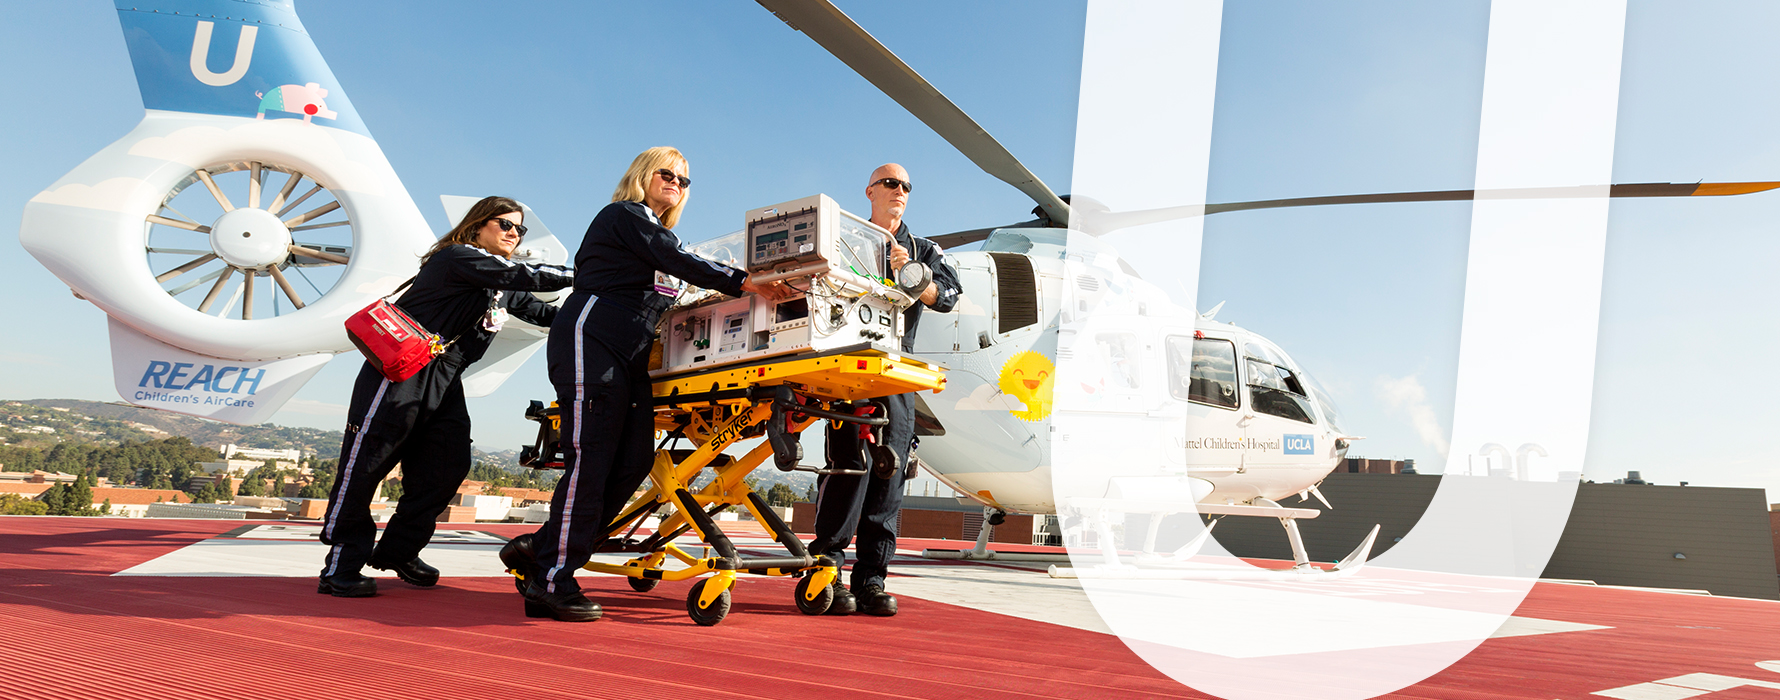 Nurses on helipad transporting patient